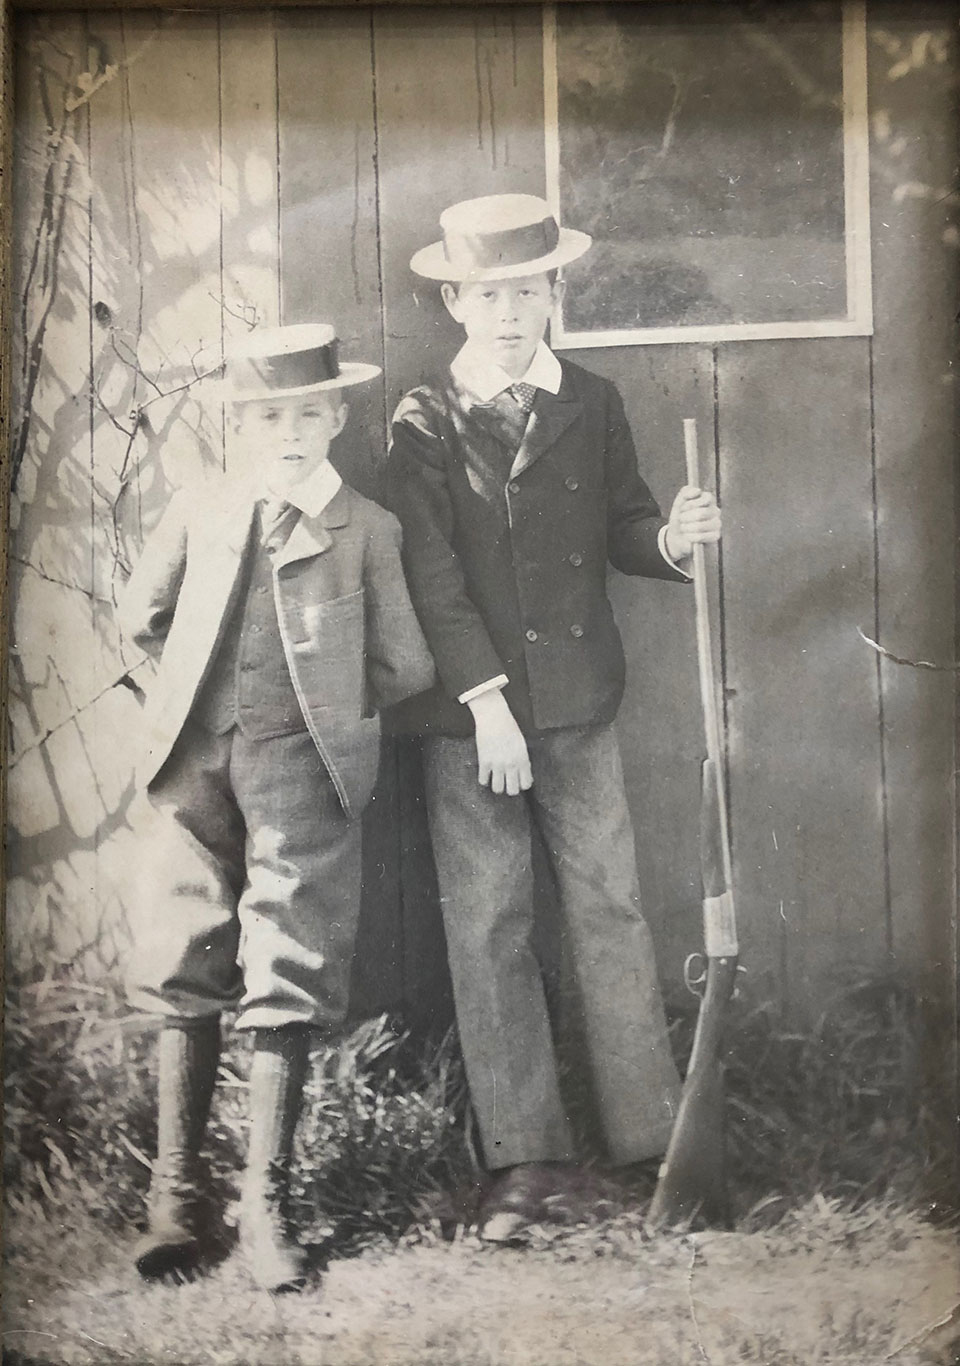 The Editor's grandfather and great uncle in teh early 1920s, in Ireland.